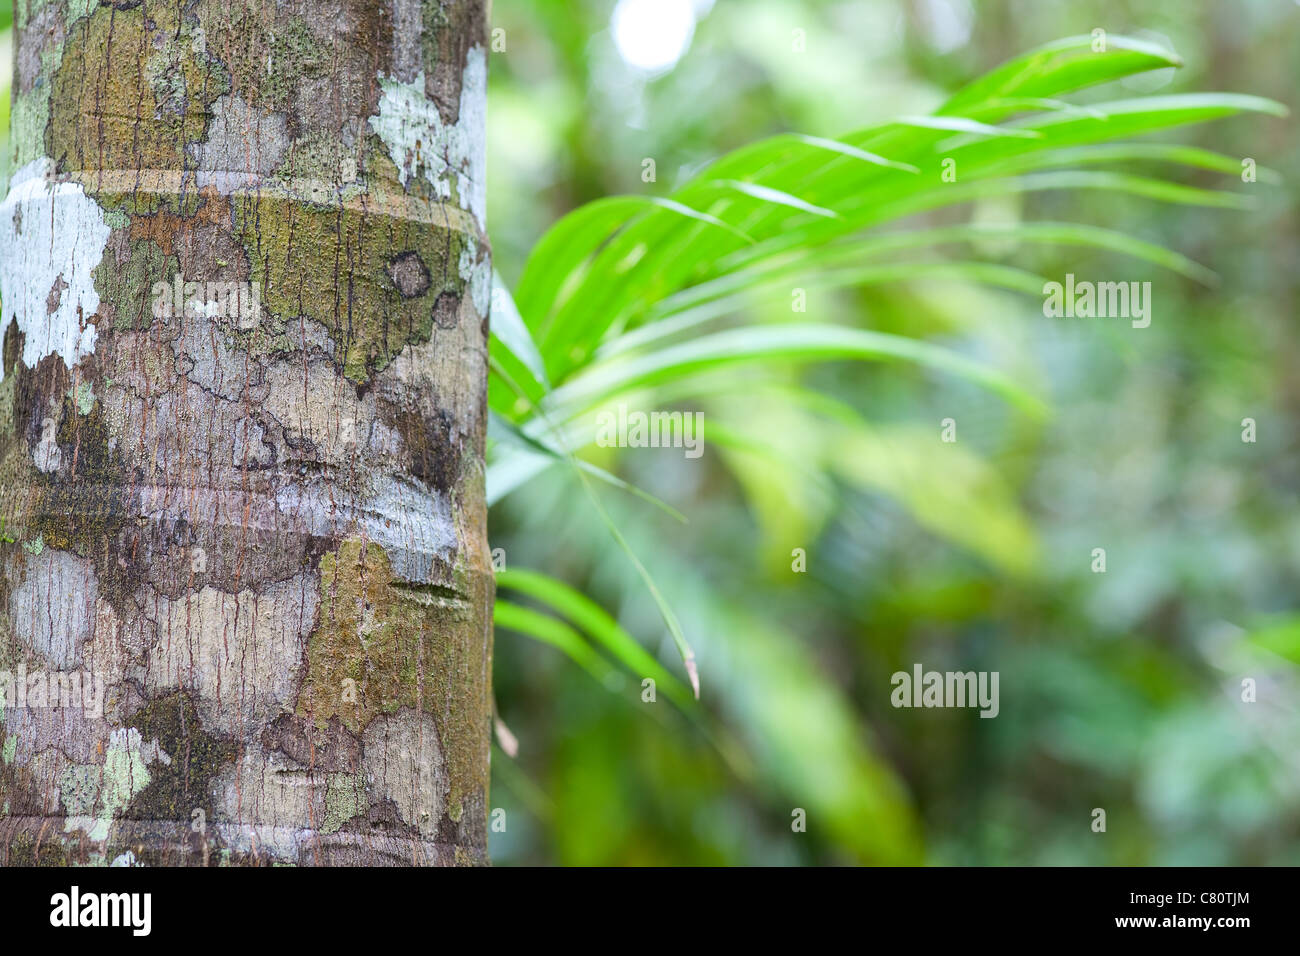 detail tropical rain forest green background - Stock Image